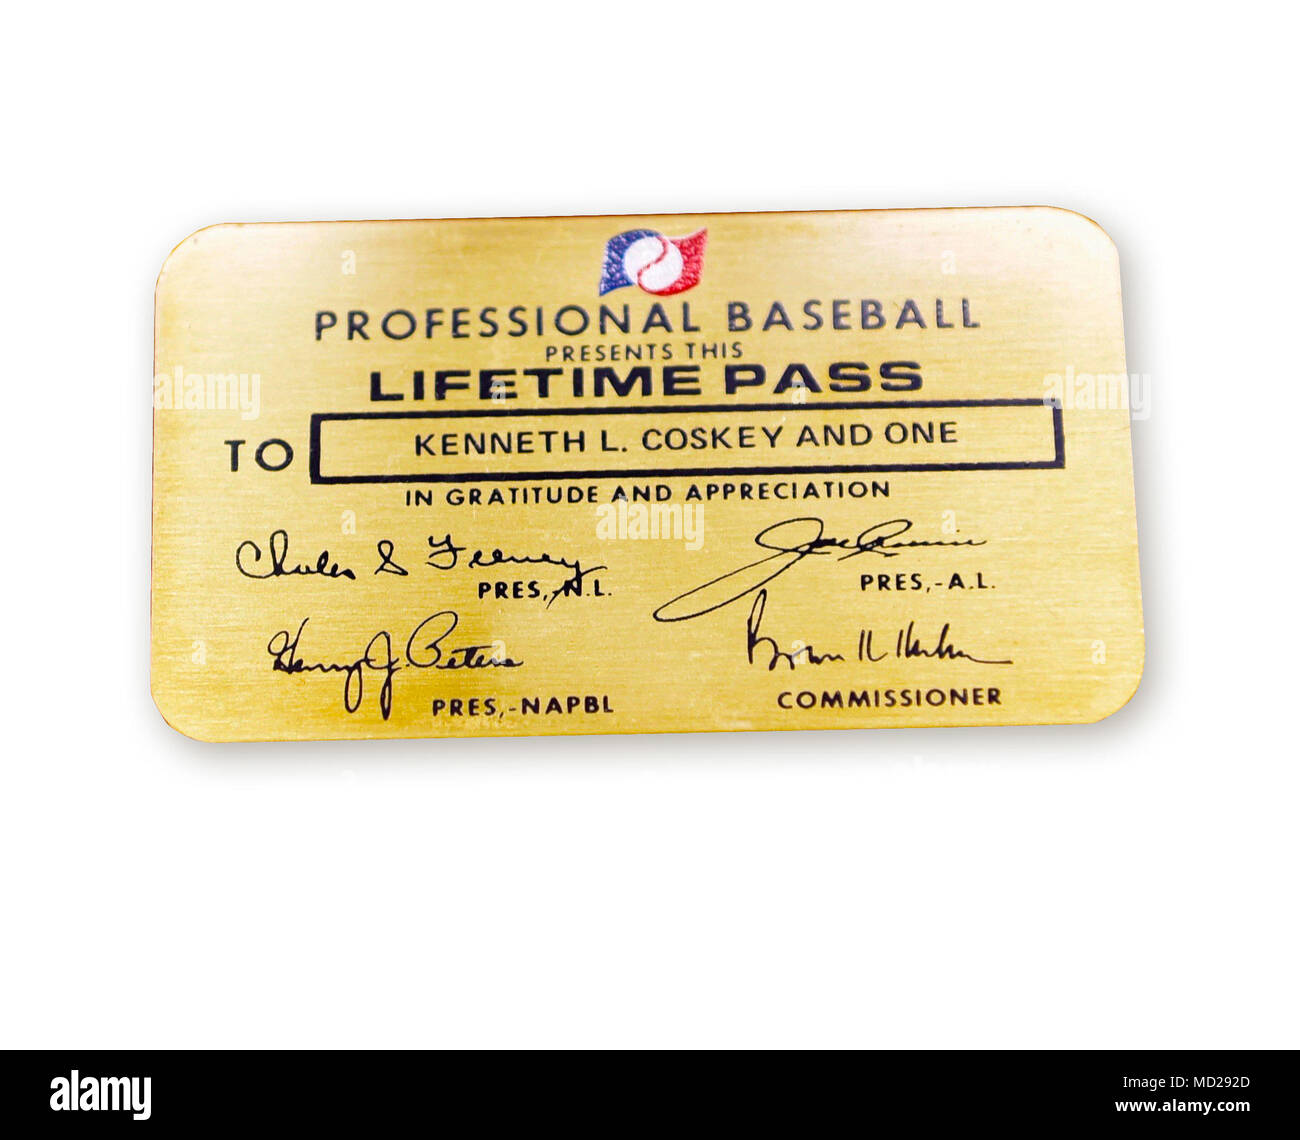 "Major League Baseball has occasionally given out its coveted Lifetime Pass, the ""Golden Ticket,"" to veterans. On September 6, 1968, North Vietnamese shot down as A6A Intruder piloted by Navy Commander Kenneth Coskey. Held as a prisoner of war in North Vietnam, he was released on March 14, 1973. Major League Baseball presented him with this Lifetime Pass that would allow Coskey and a guest to attend any game for the rest of his life. Courtesy Kenneth Coskey. Stock Photo"